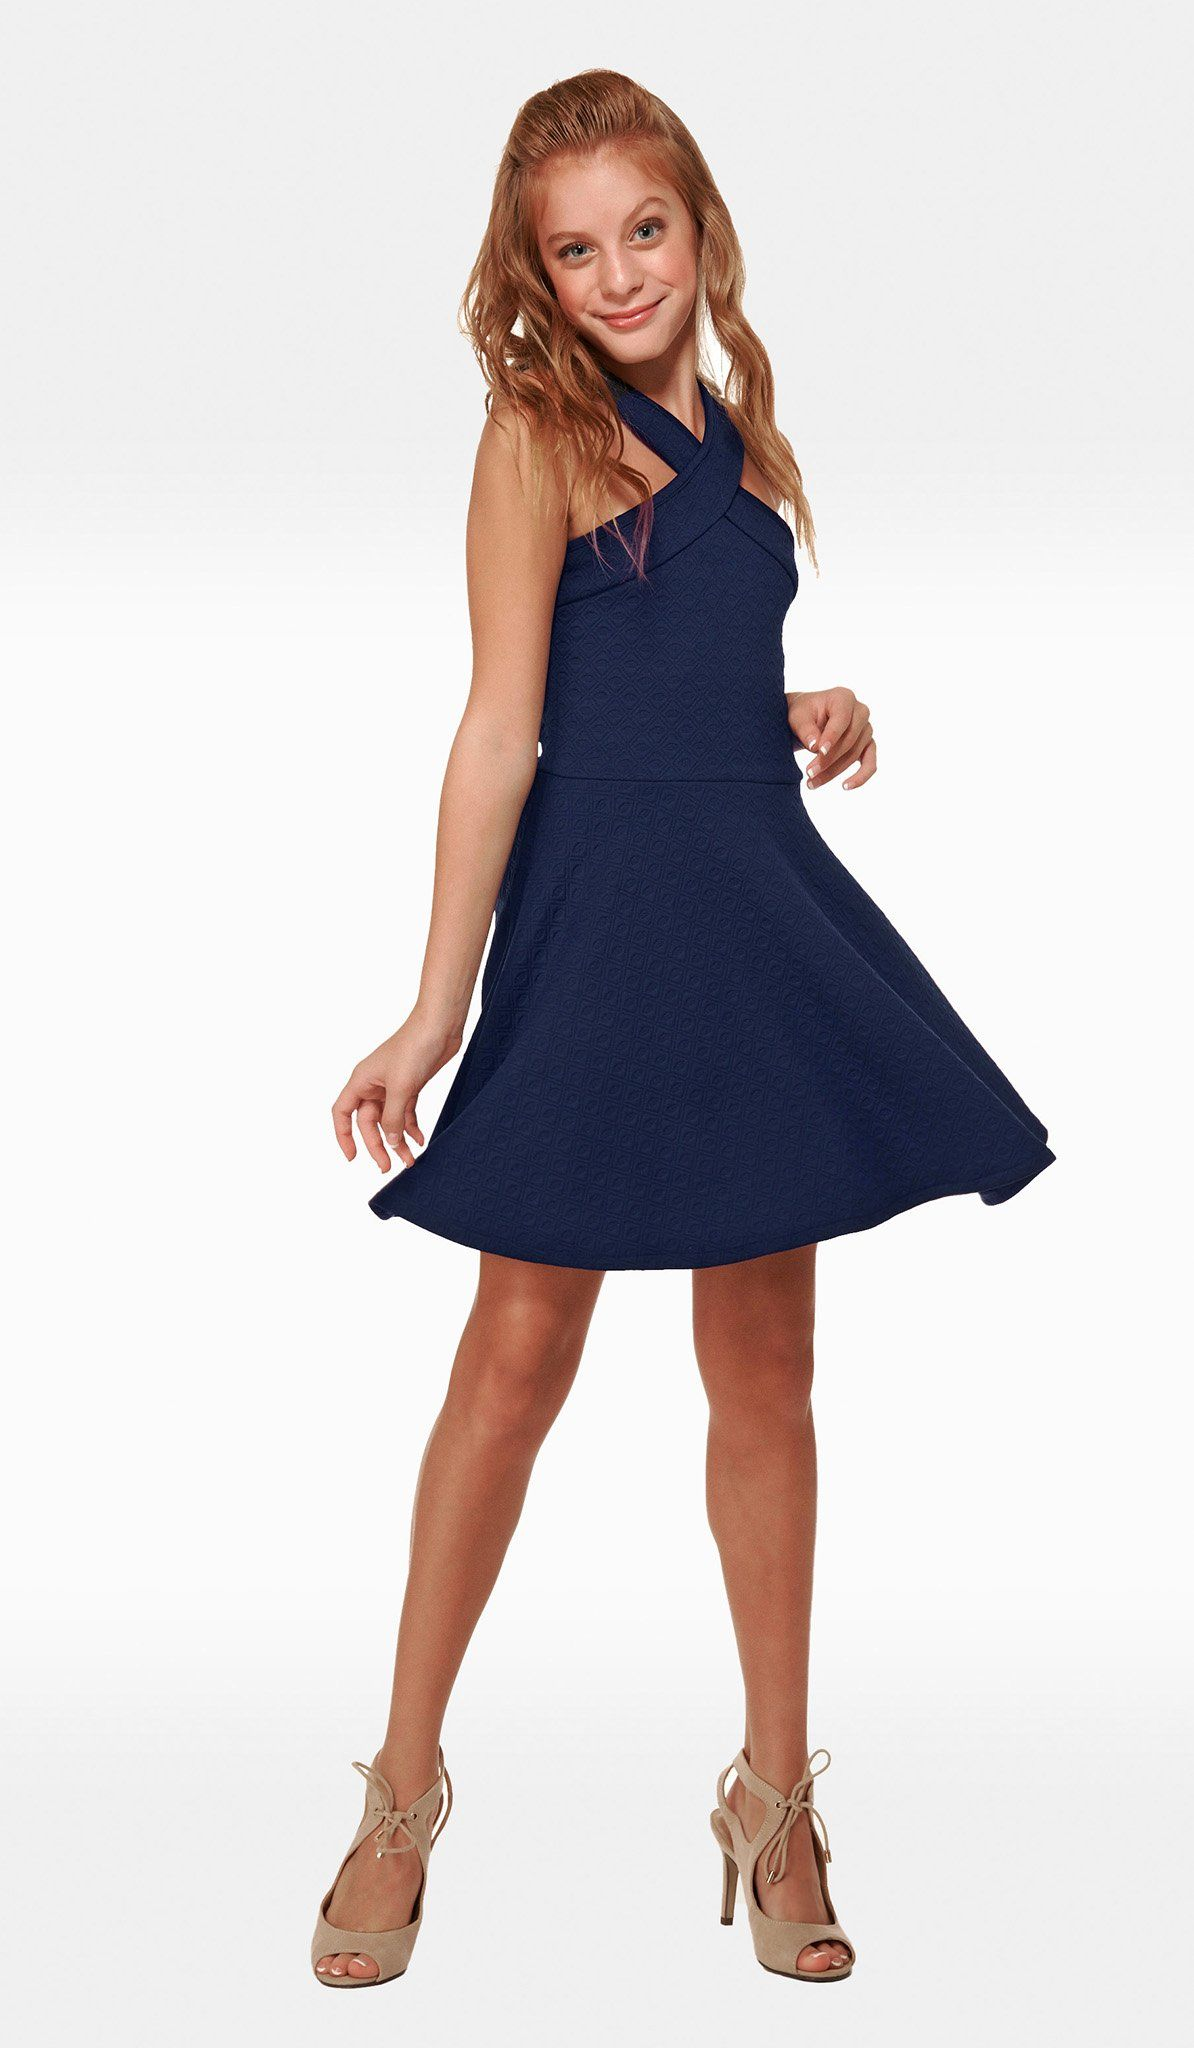 5cd056286f7 The Sally Miller Tracie Dress - Navy diamond textured knit fit and flare  dress with thick straps